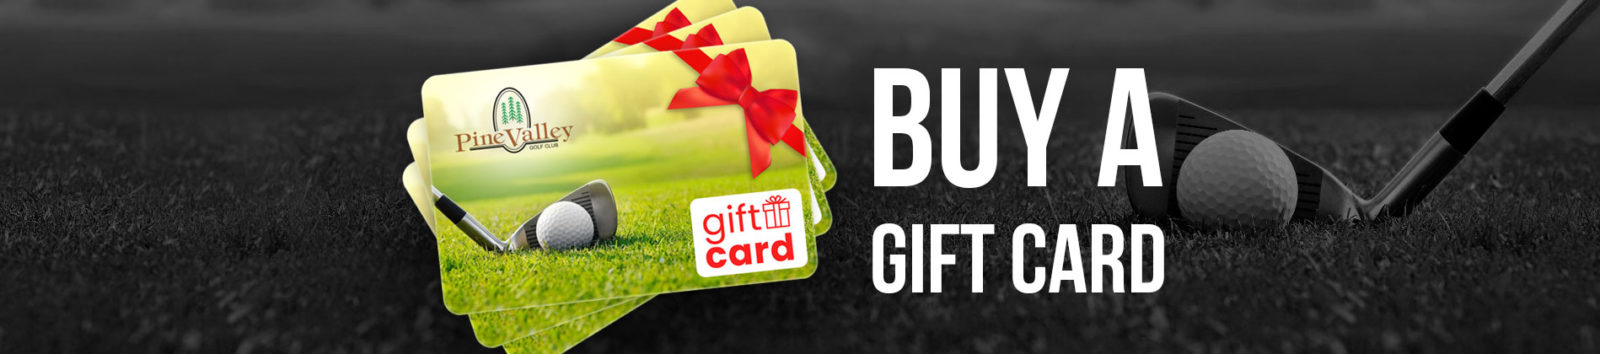 Buy A Gift Card